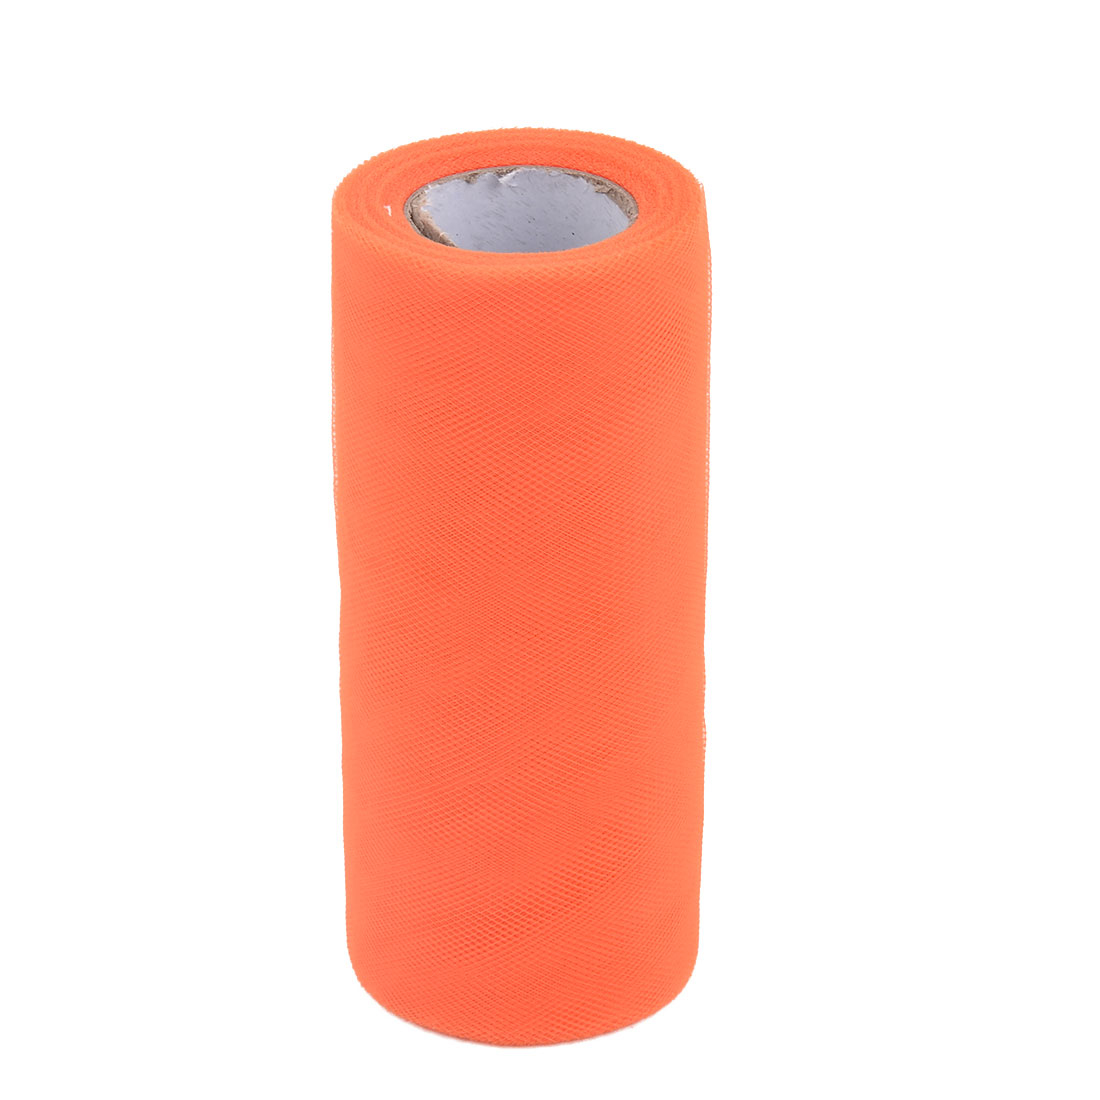 Wedding Gift Polyester DIY Dress Tutu Decor Tulle Spool Roll Orange 6 Inch x 25 Yards